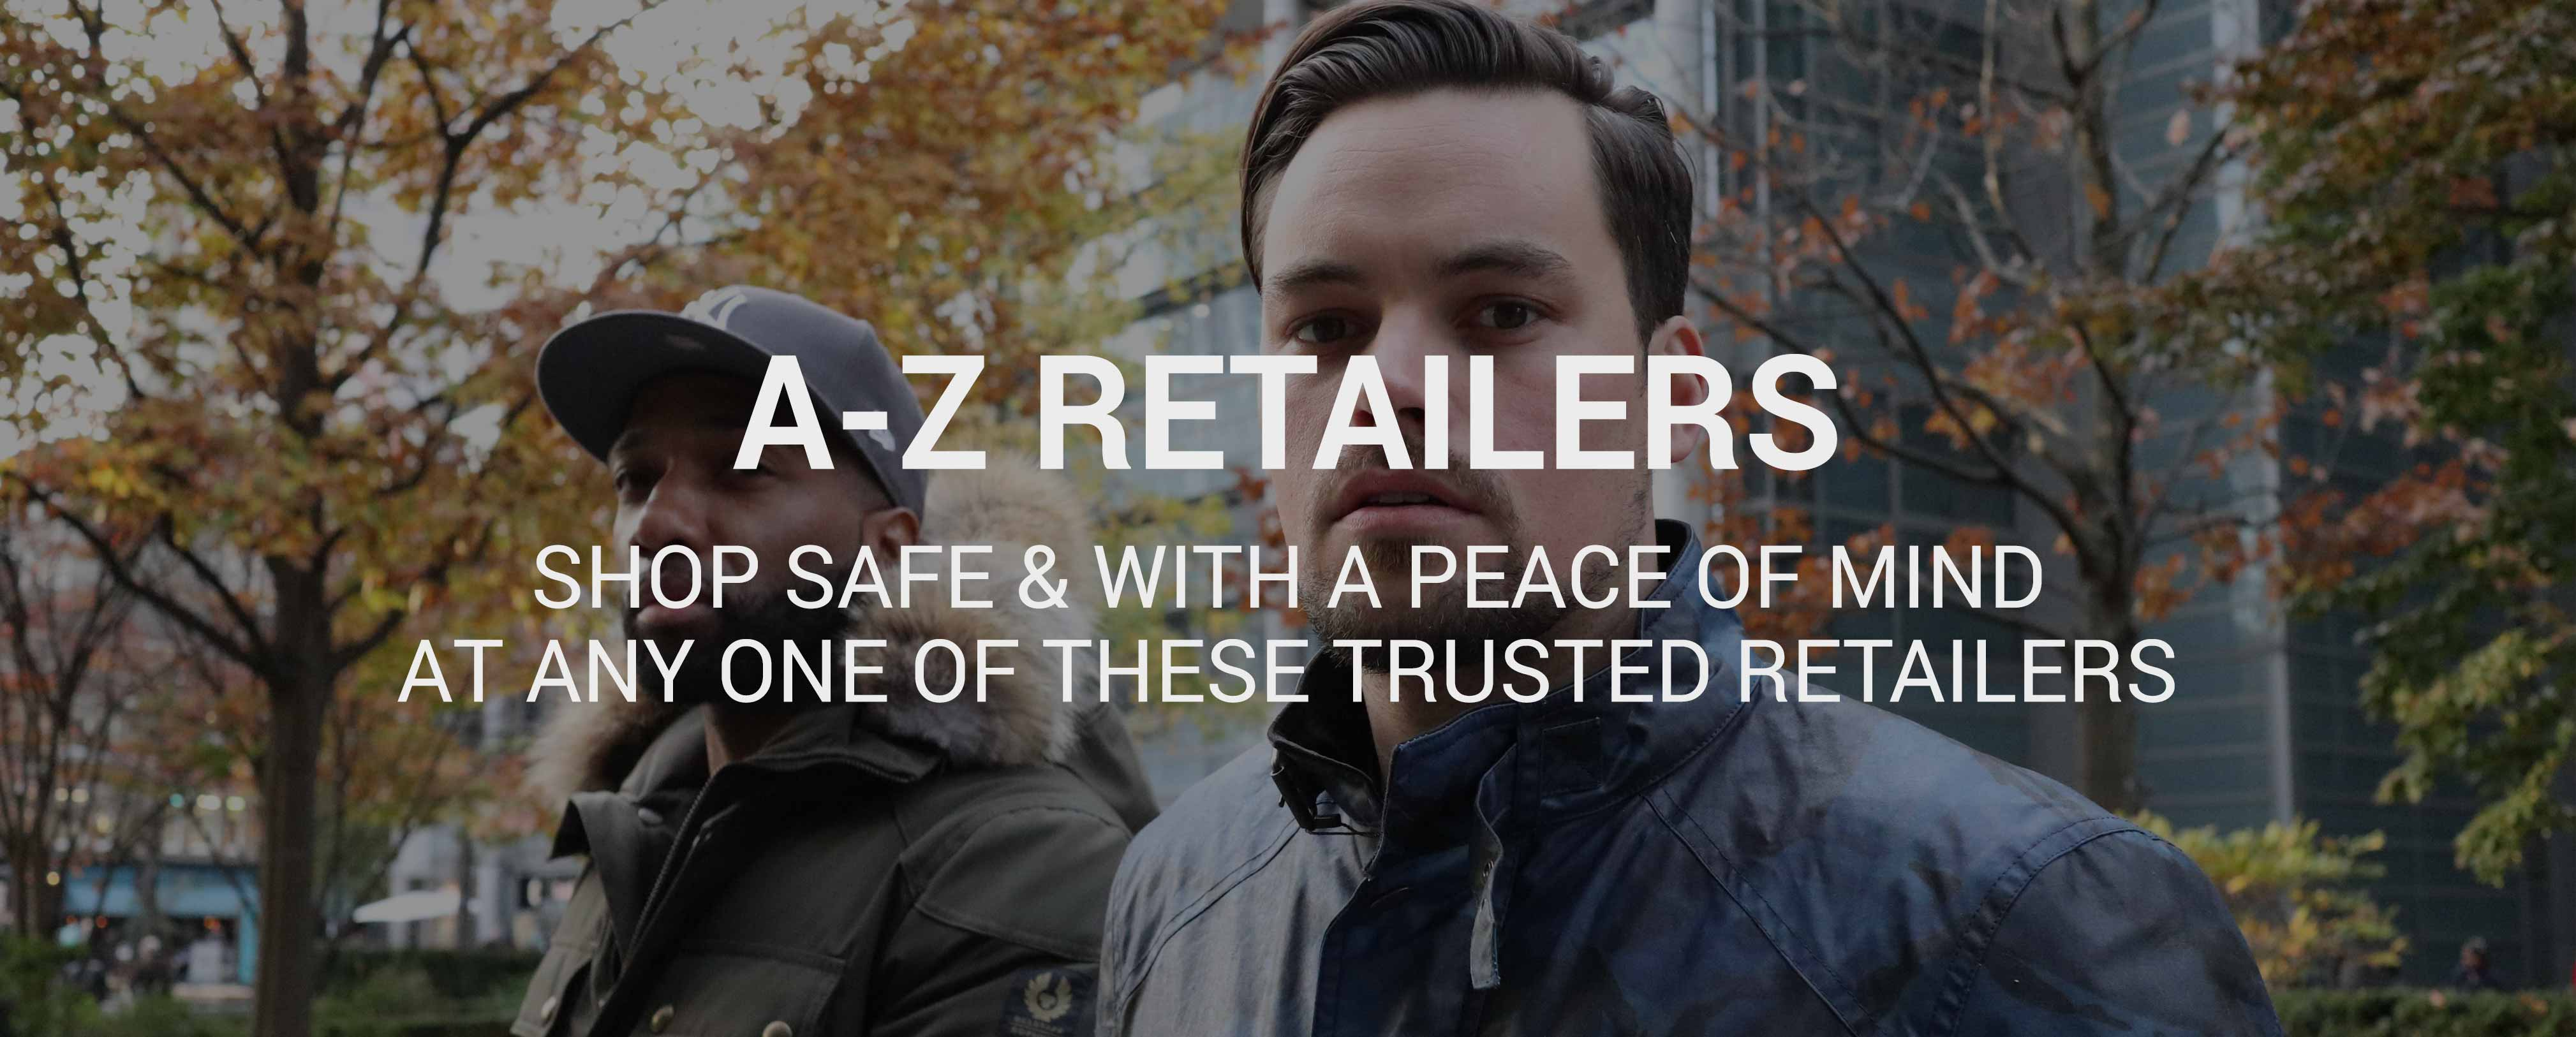 A-Z Retailers